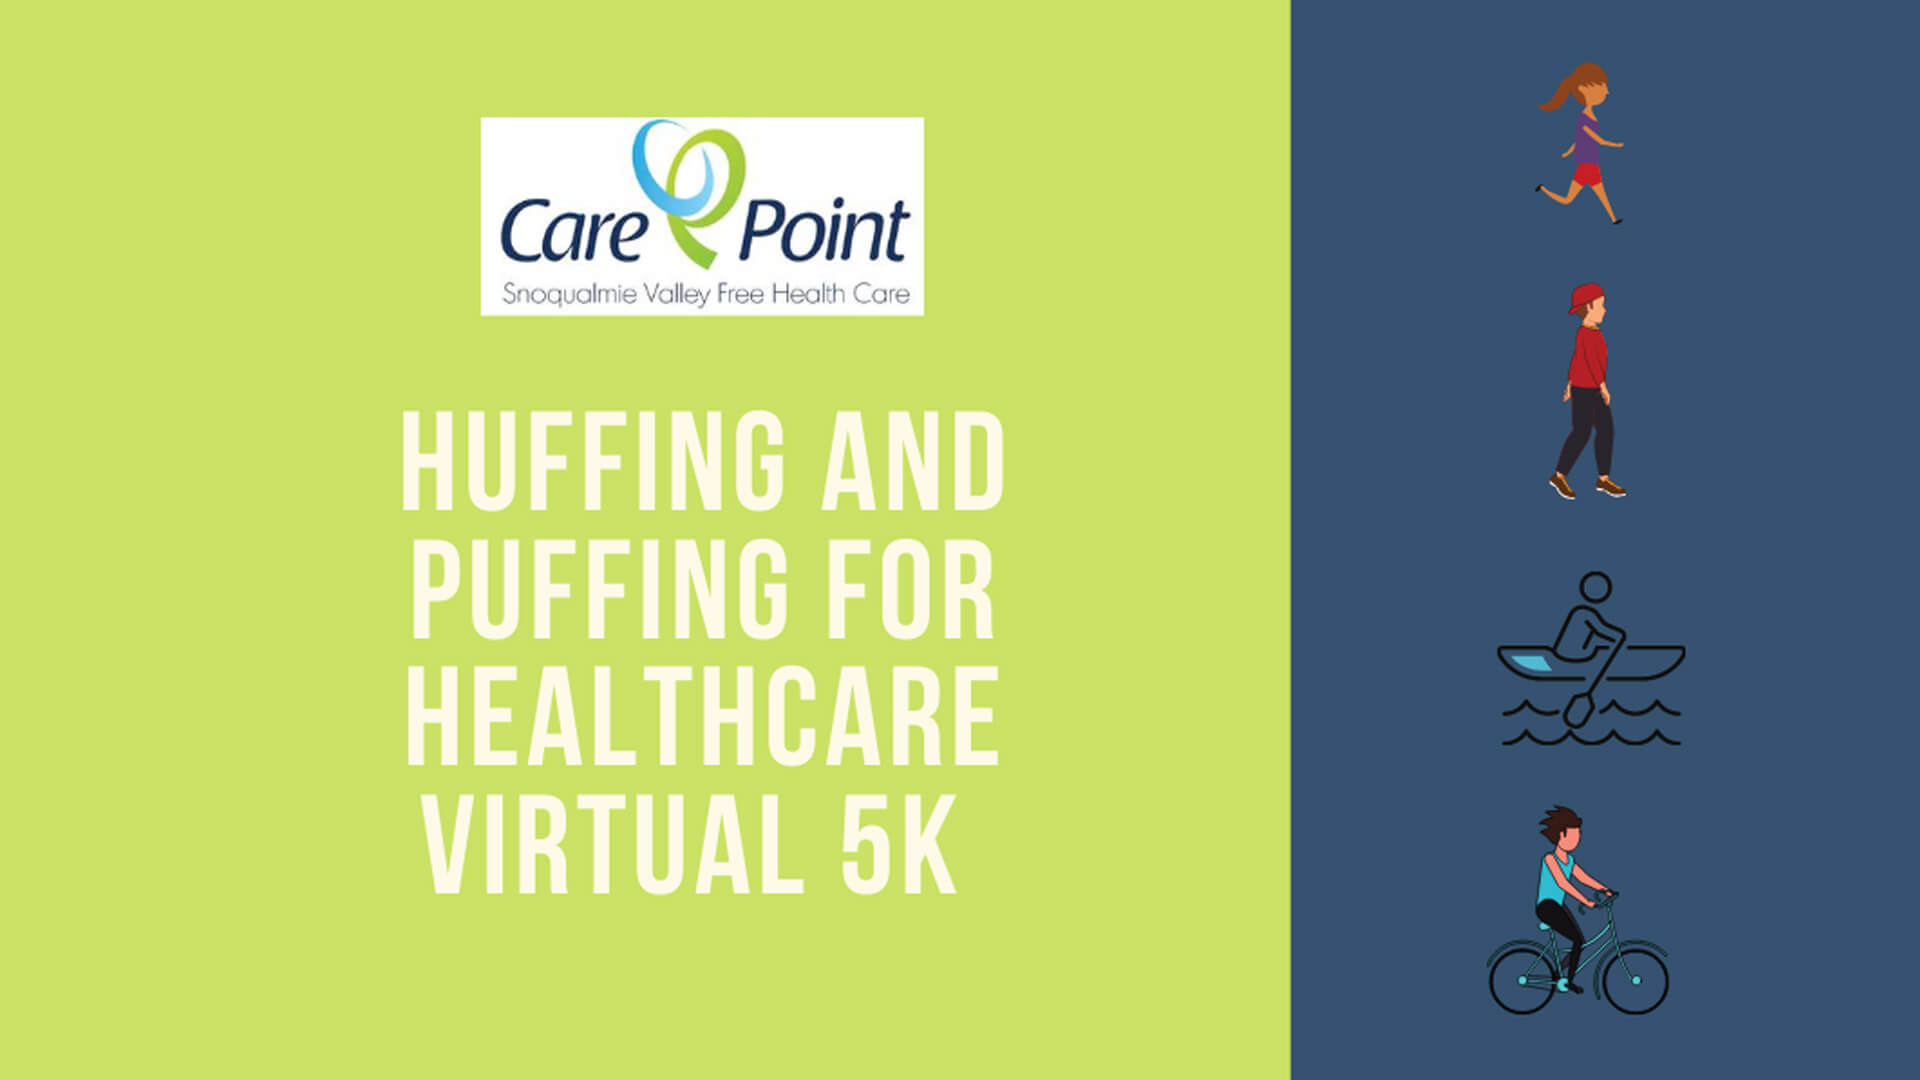 Huffing & Puffing Virtual 5K for Healthcare